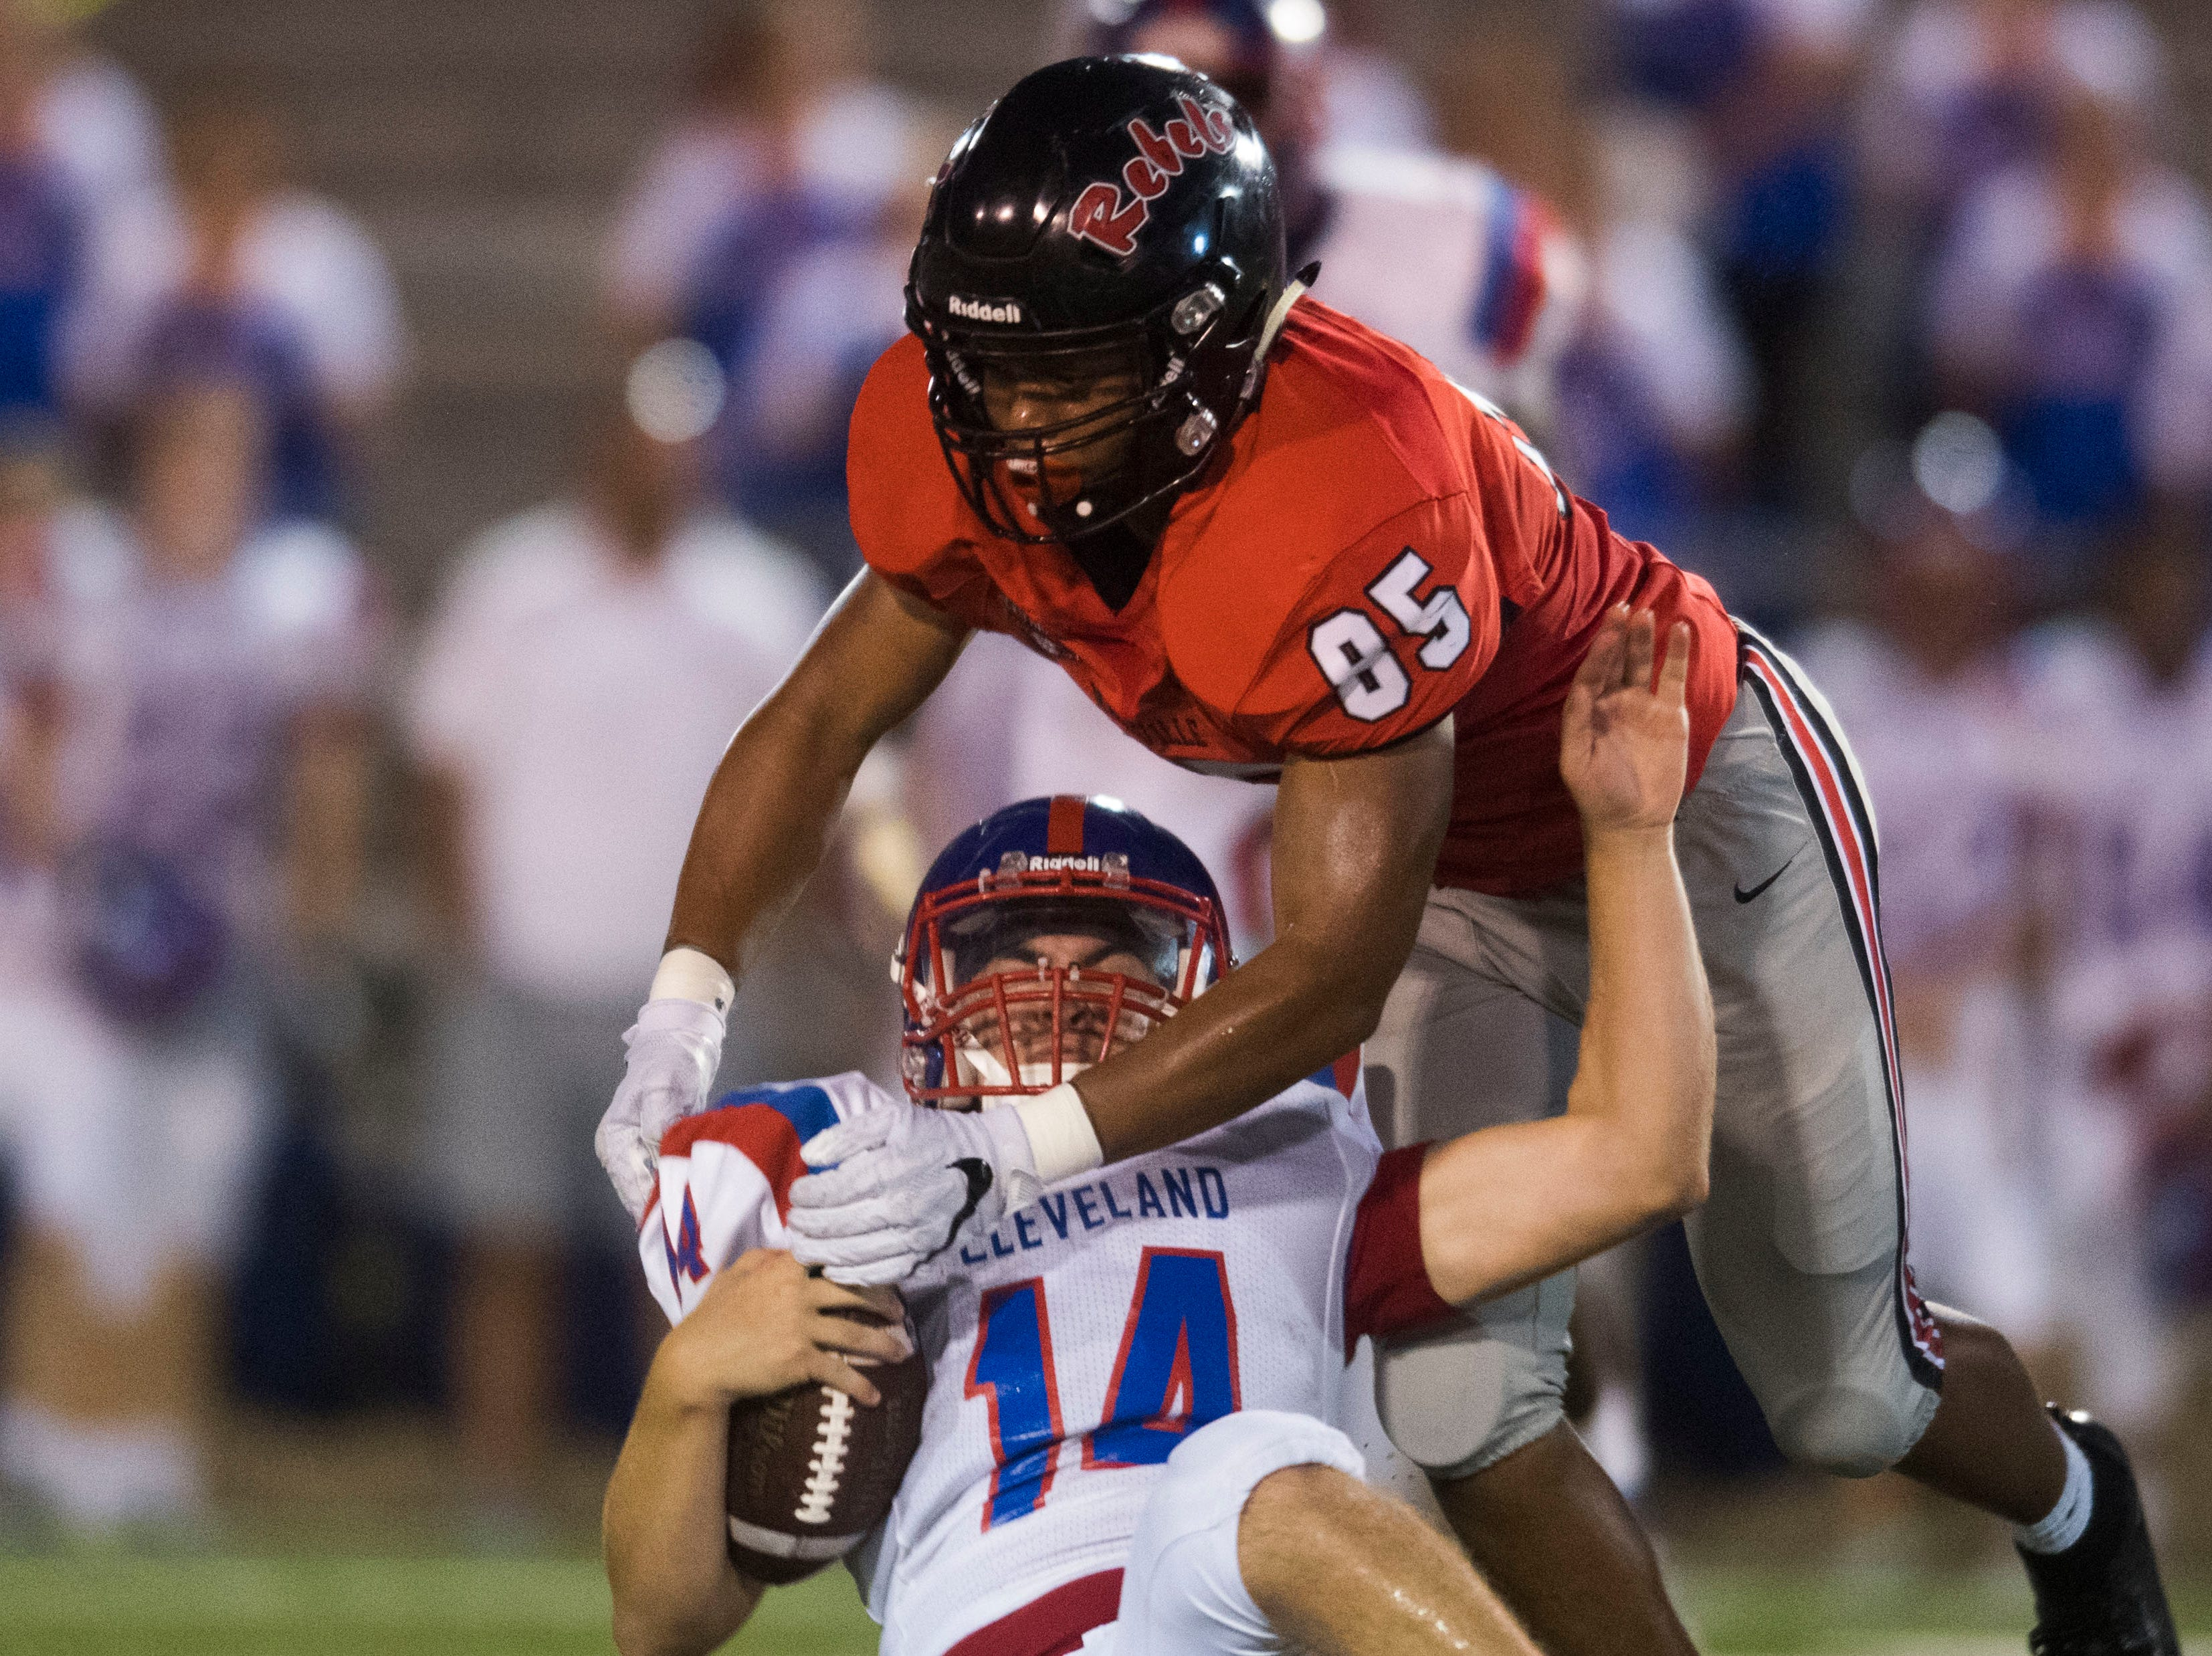 Cleveland's Jackson Moore (14) slides to avoid a tackle by Maryville's Matthew Brooks (85) during a game between Cleveland and Maryville at Maryville Thursday, Oct. 4, 2018. Maryville defeated Cleveland 42-7.